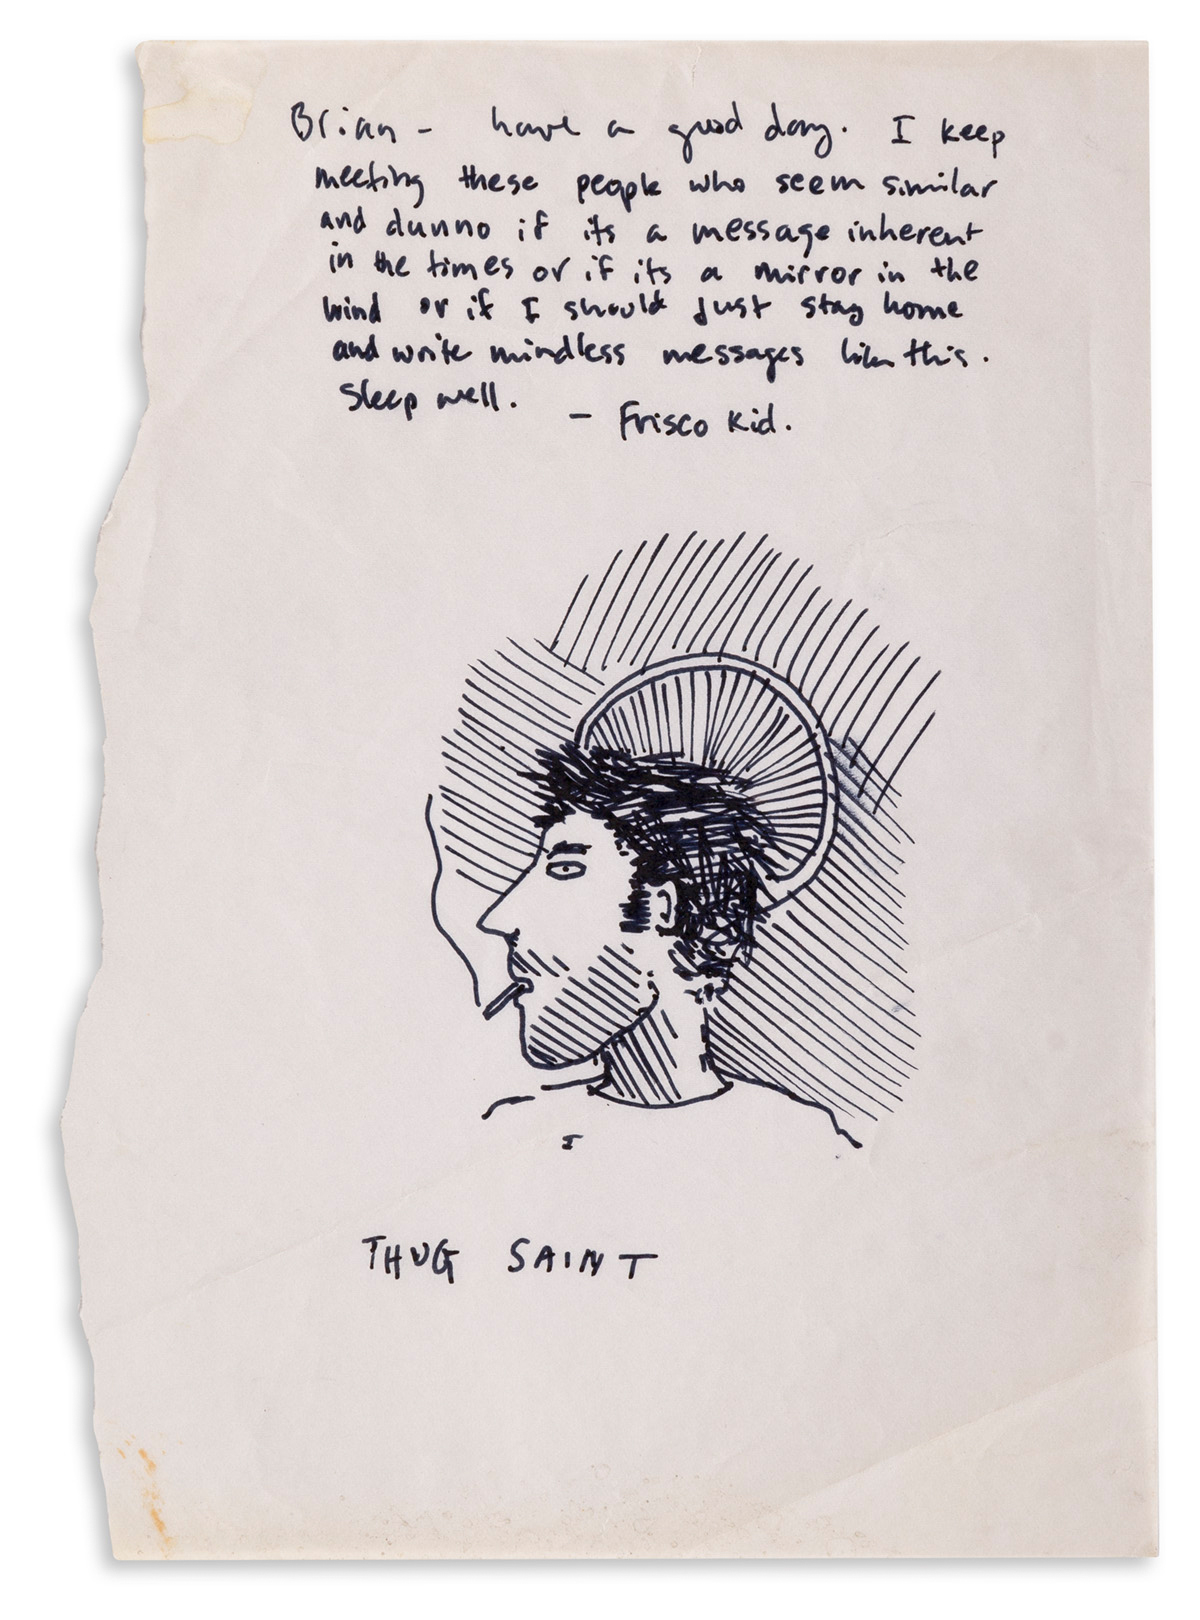 DAVID WOJNAROWICZ (1954-1992) Small archive of song lyrics from his band 3 Teens Kill 4 and other projects.